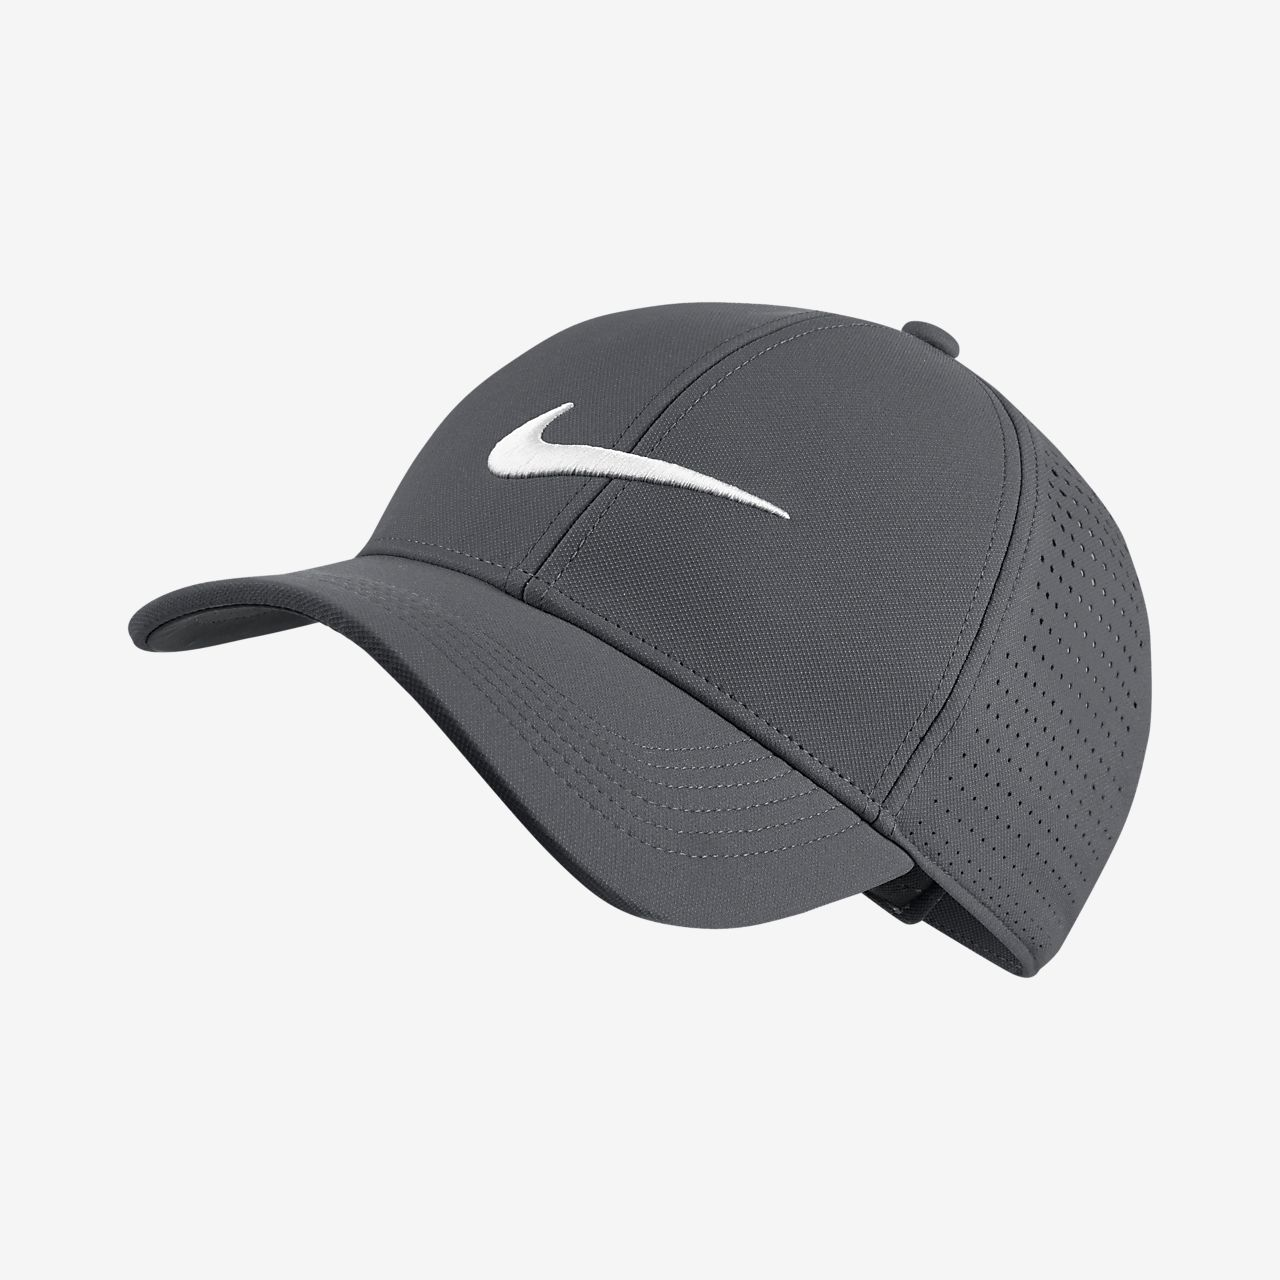 ab08c3ce6a3 Nike Legacy 91 Perforated Adjustable Golf Hat. Nike.com